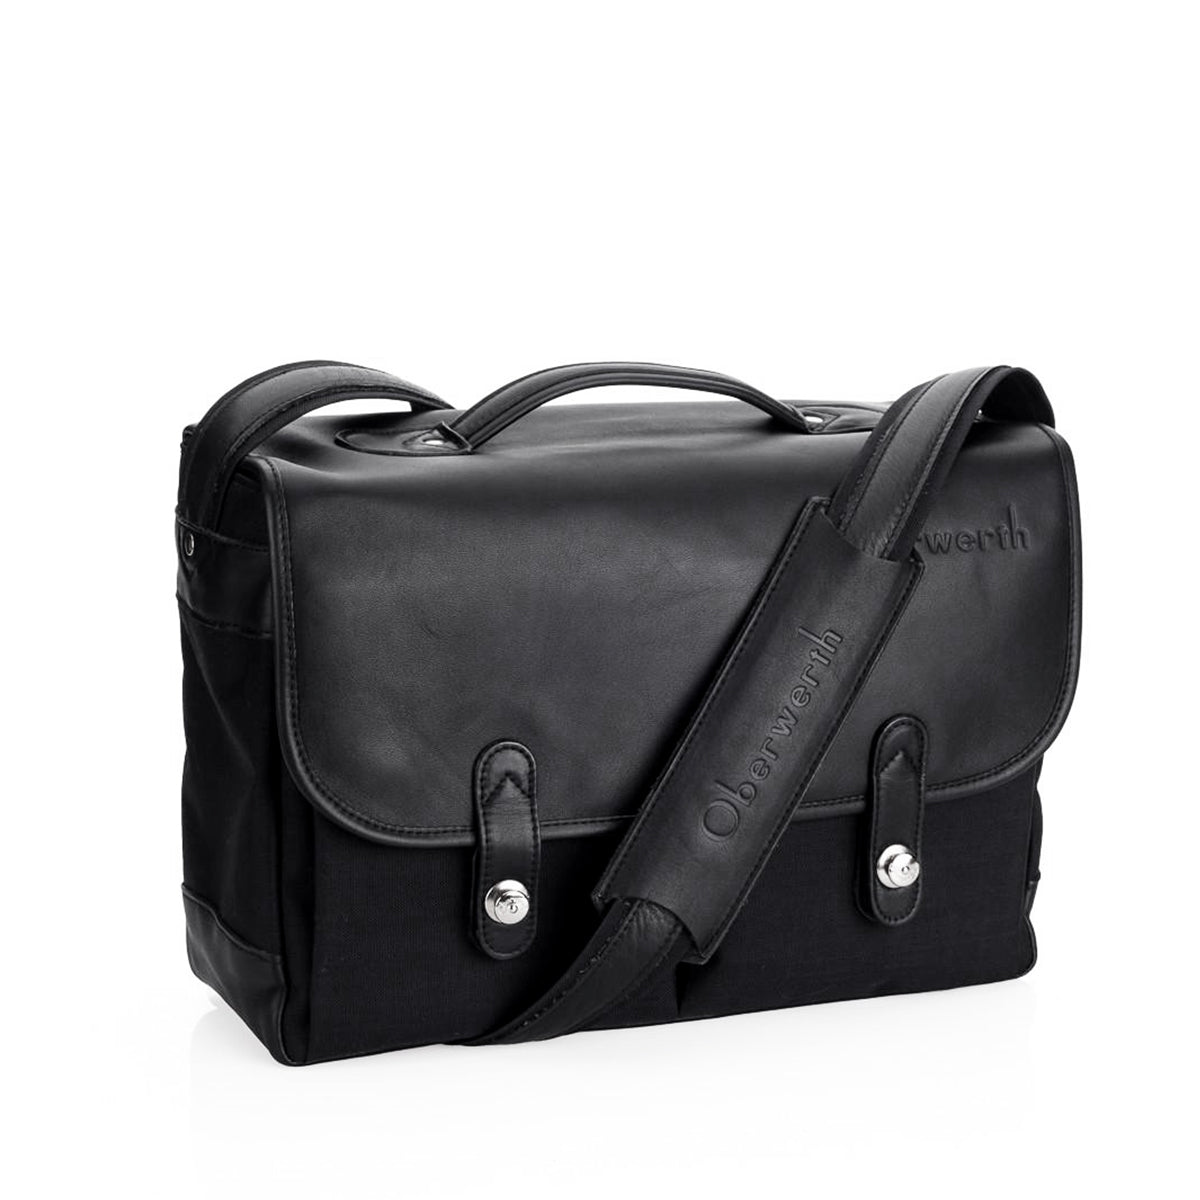 Oberwerth München Large Photo Bag - Cordura/Leather -  Black/Black